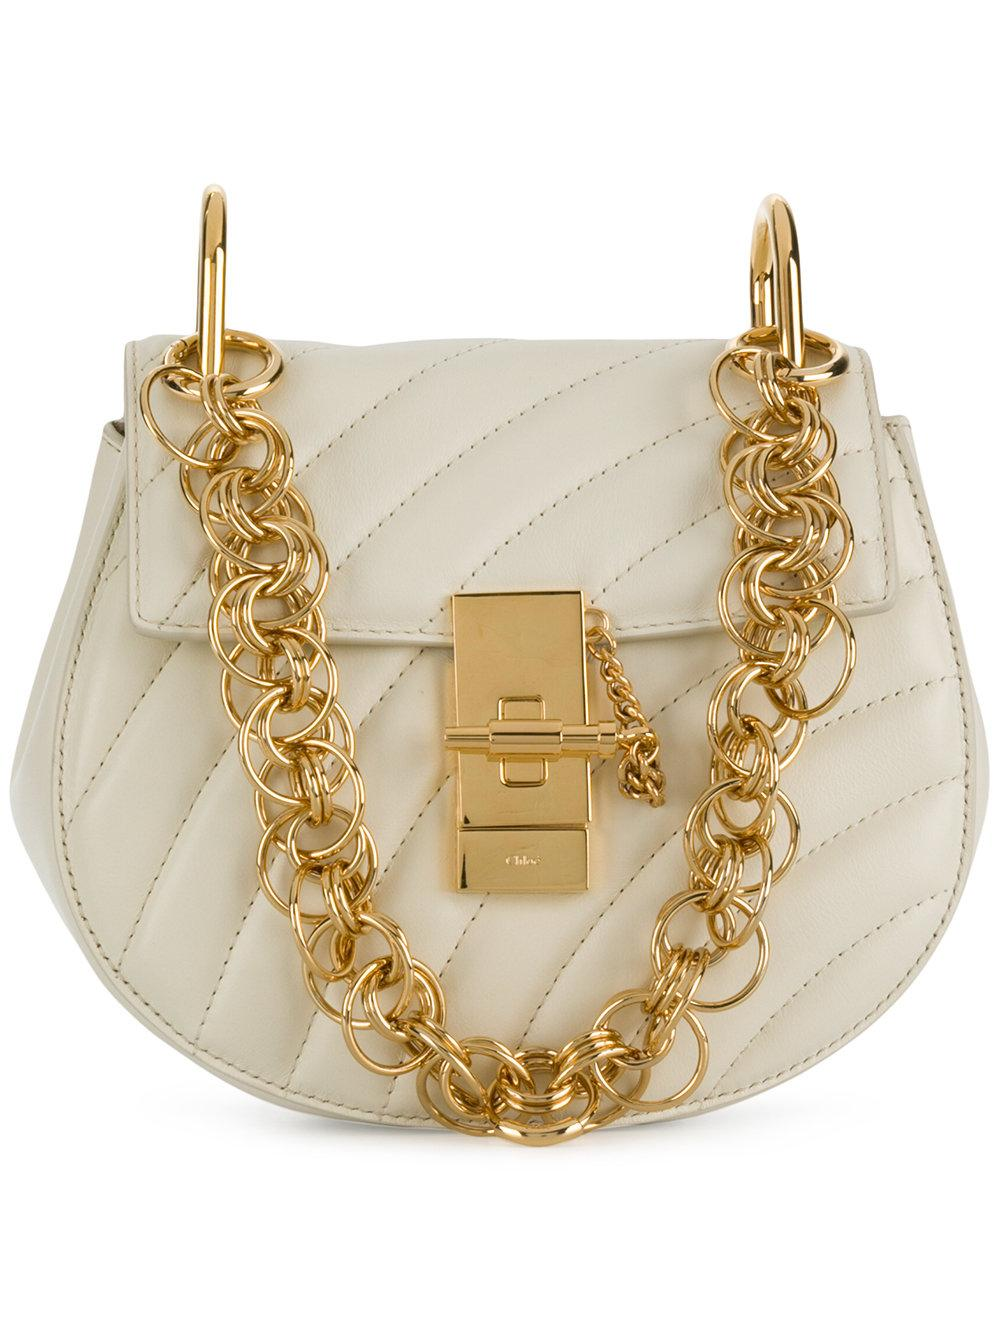 ChloÉ Quilted Drew Shoulder Bag